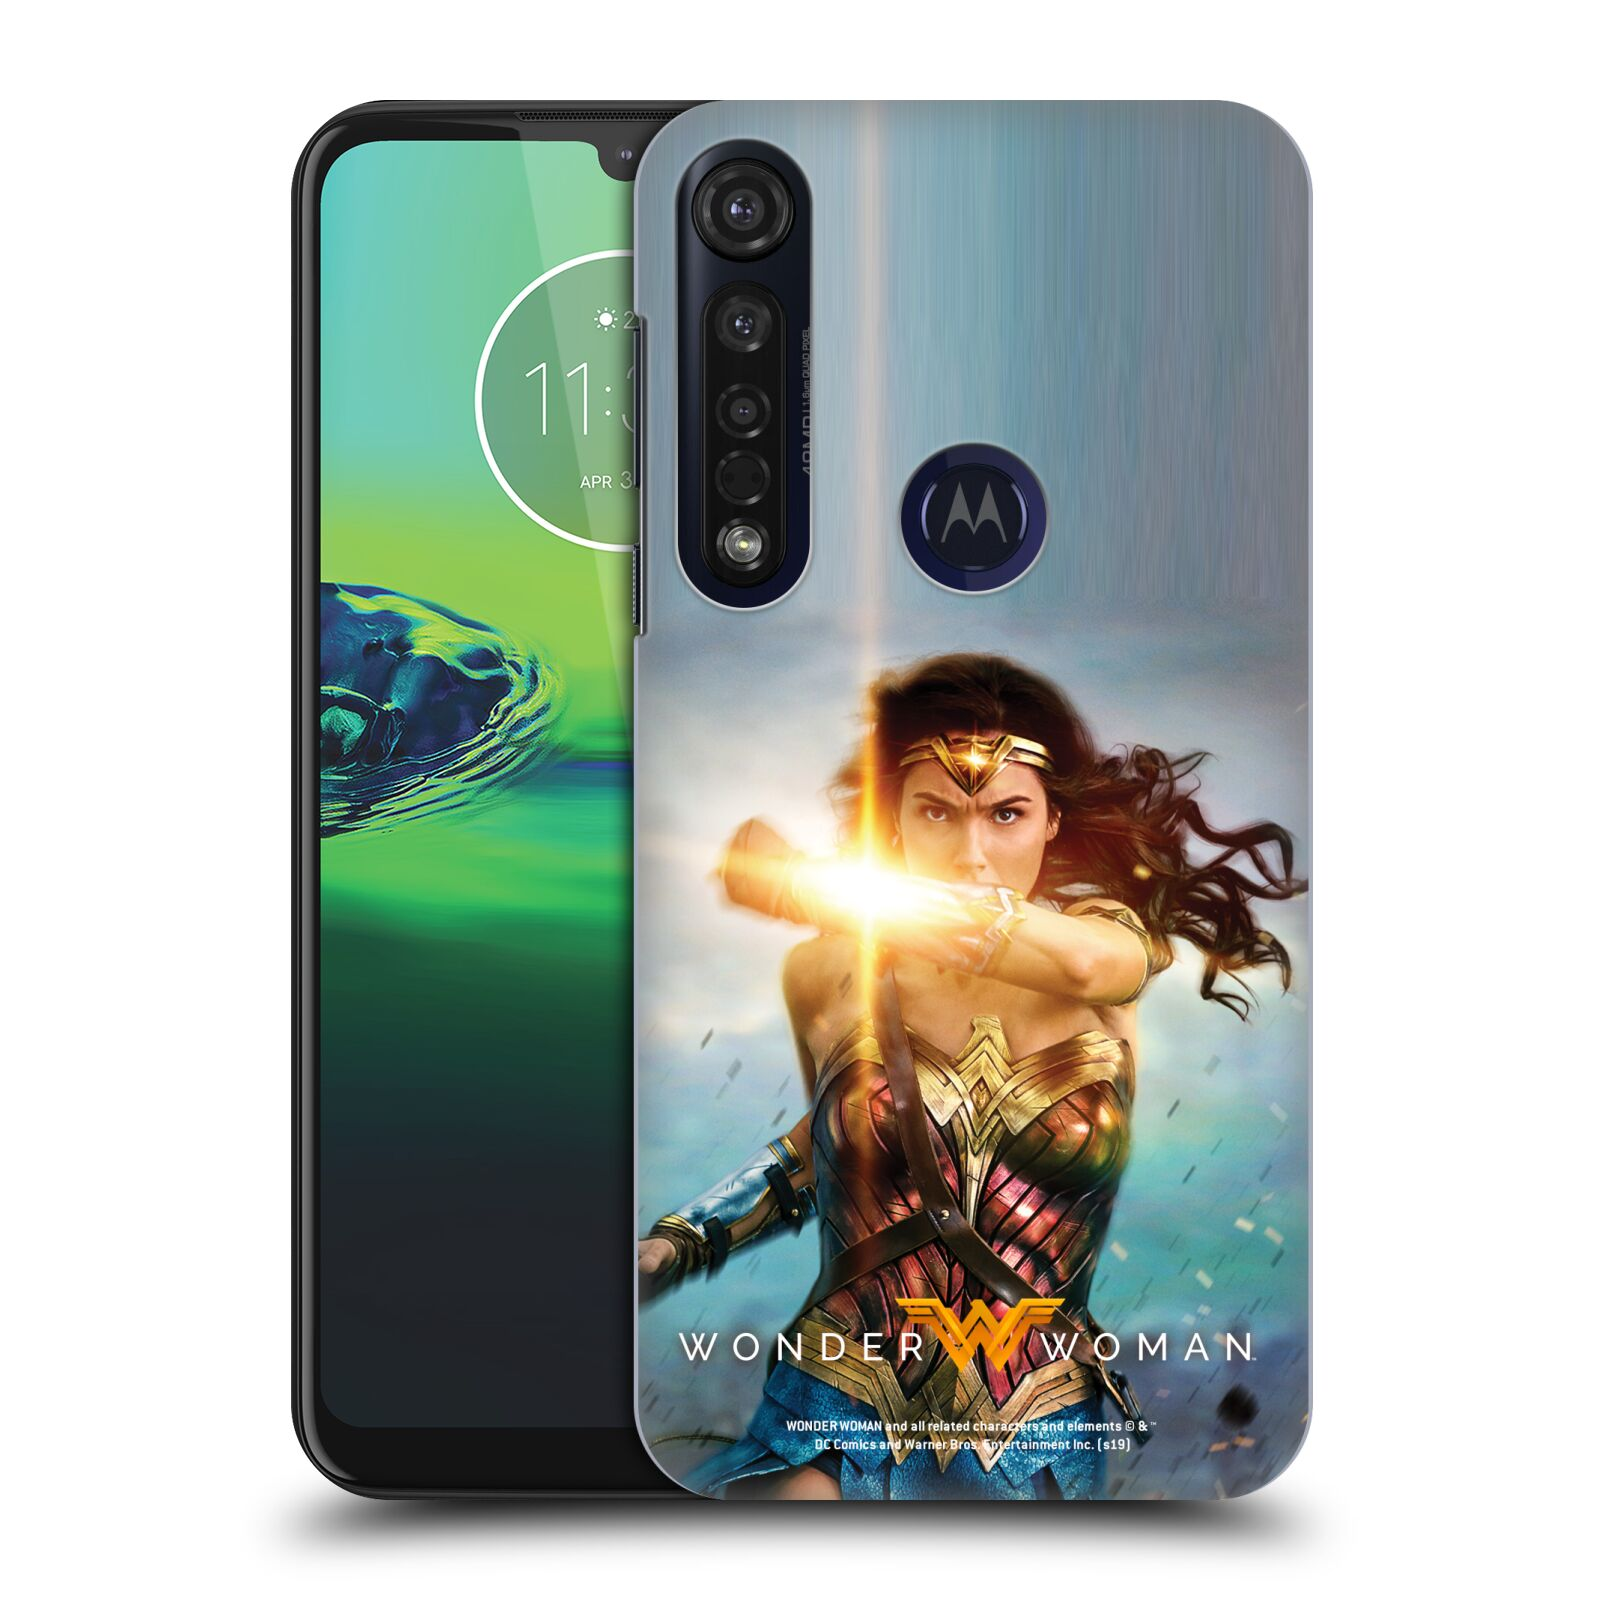 Official Wonder Woman Movie Posters Bracelets Of Submission Case for Motorola Moto G8 Plus